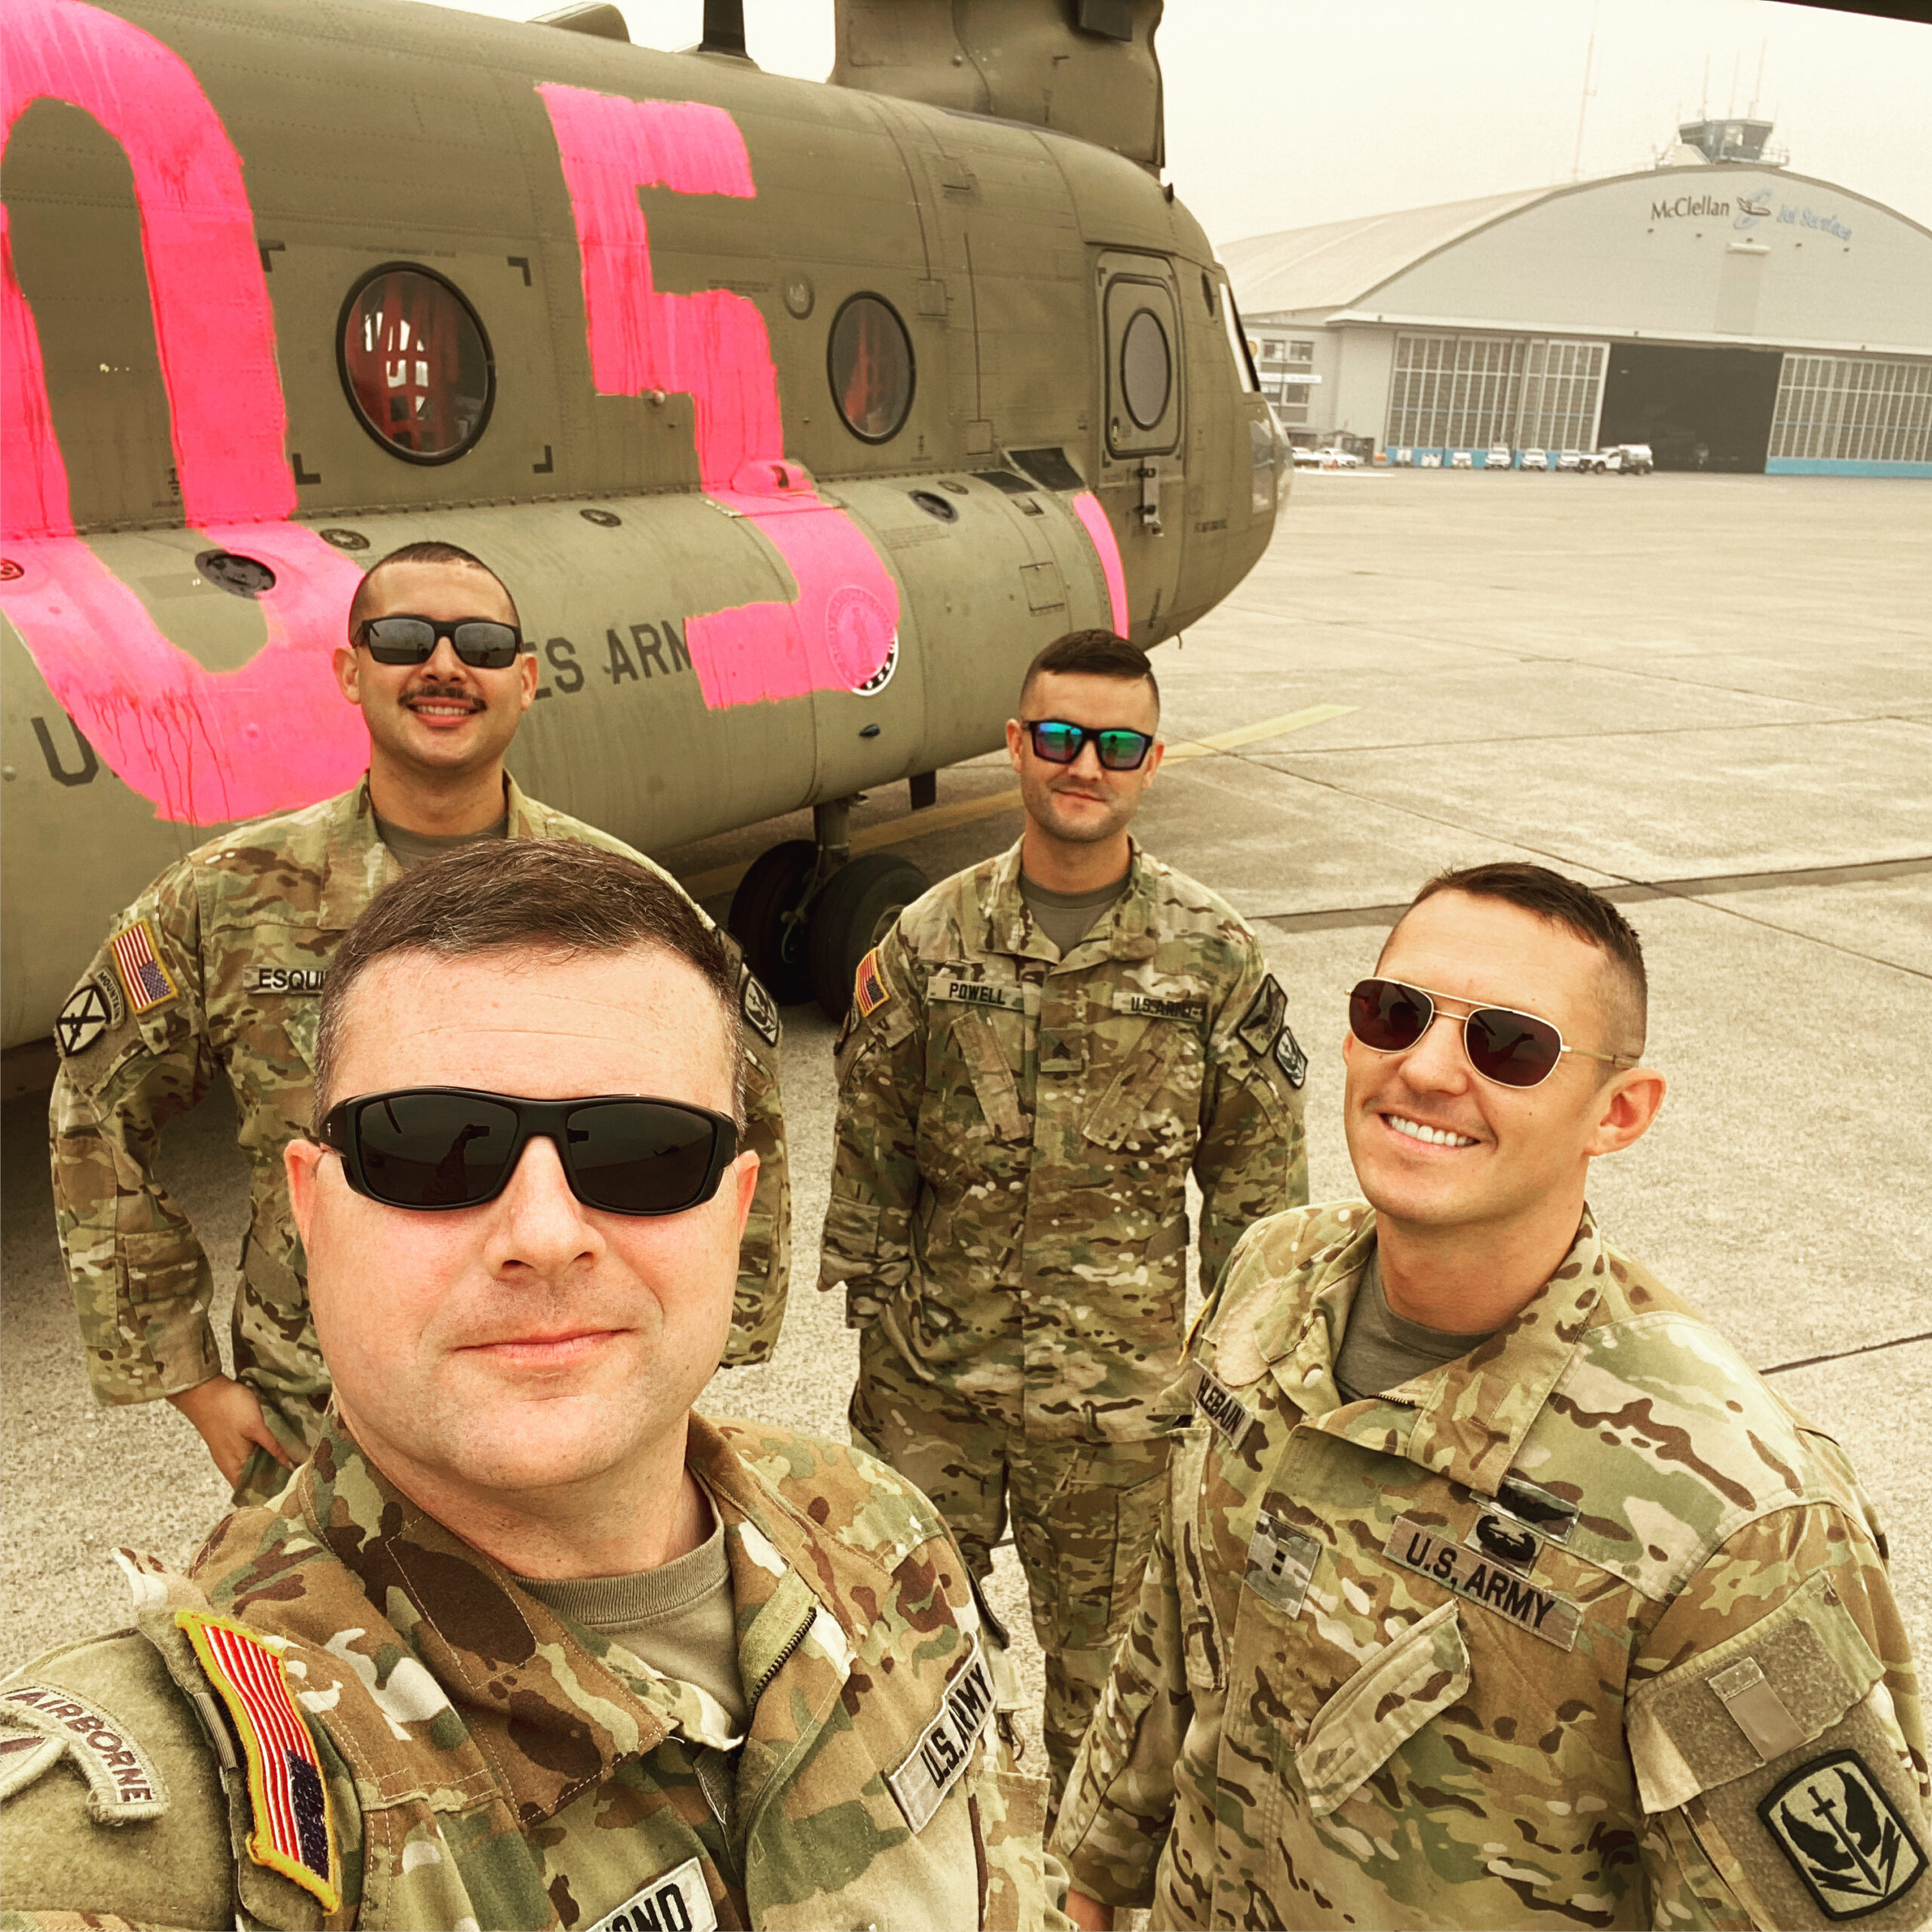 CW5 Joe Rosamond, his CH-47 crew, and the crew of an accompanying UH-60 were responsible for saving the lives of hundreds of campers as the Creek Fire cut them off from escaping the flames.